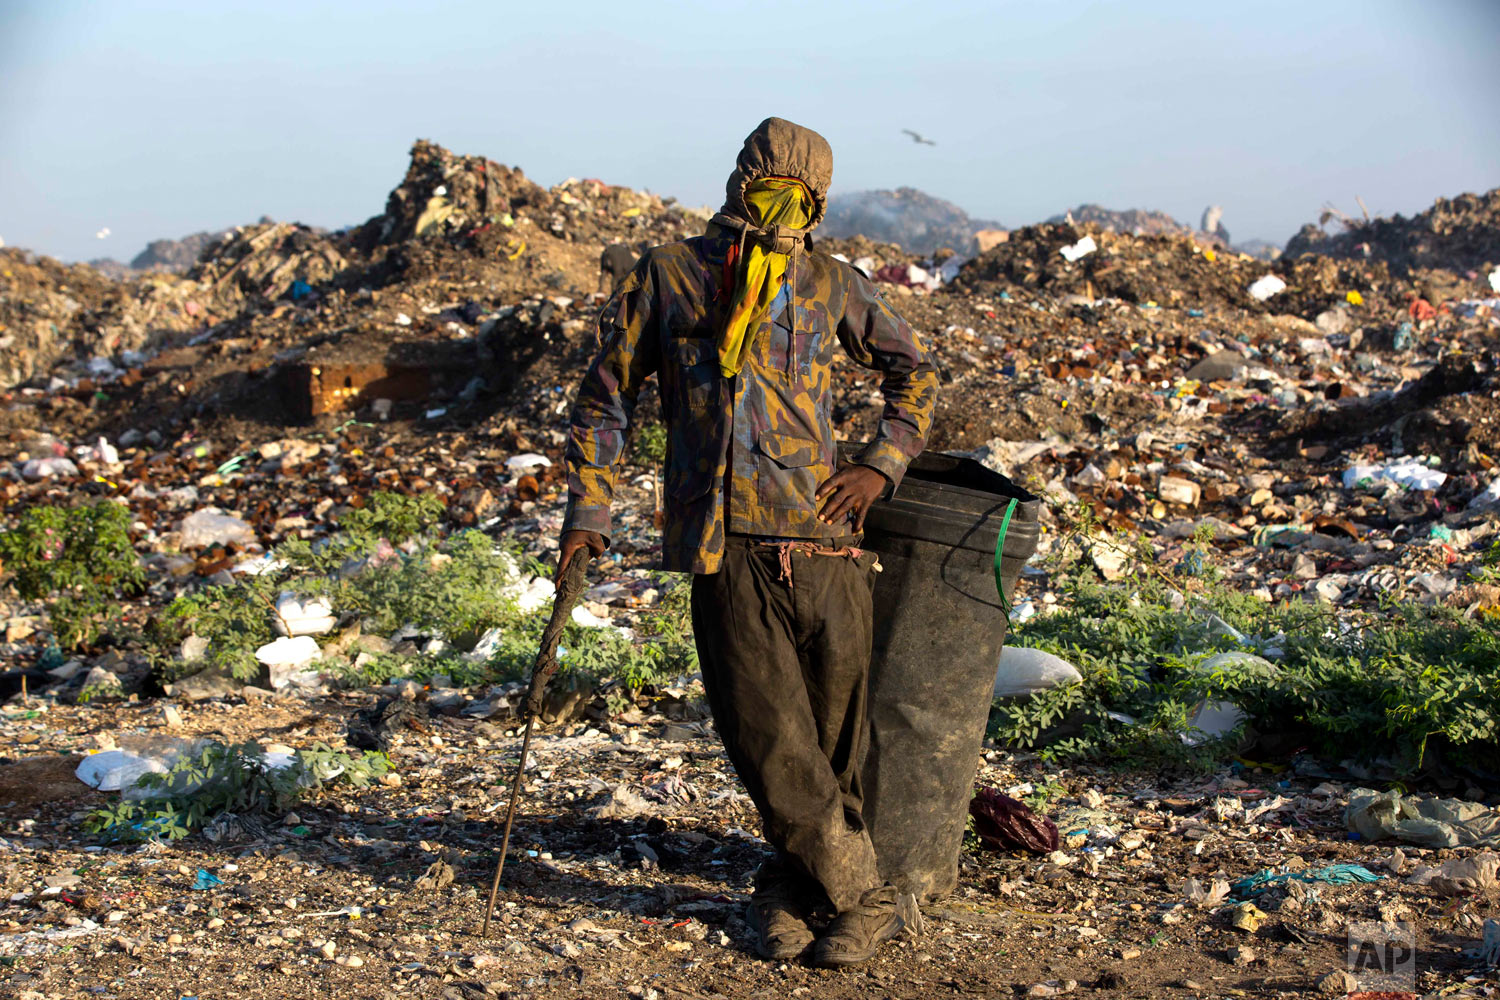 Changlair Aristide pauses for a portrait wearing an old U.N. peacekeeper's jacket he found in the trash. Aug. 24, 2018. (AP Photo/Dieu Nalio Chery)